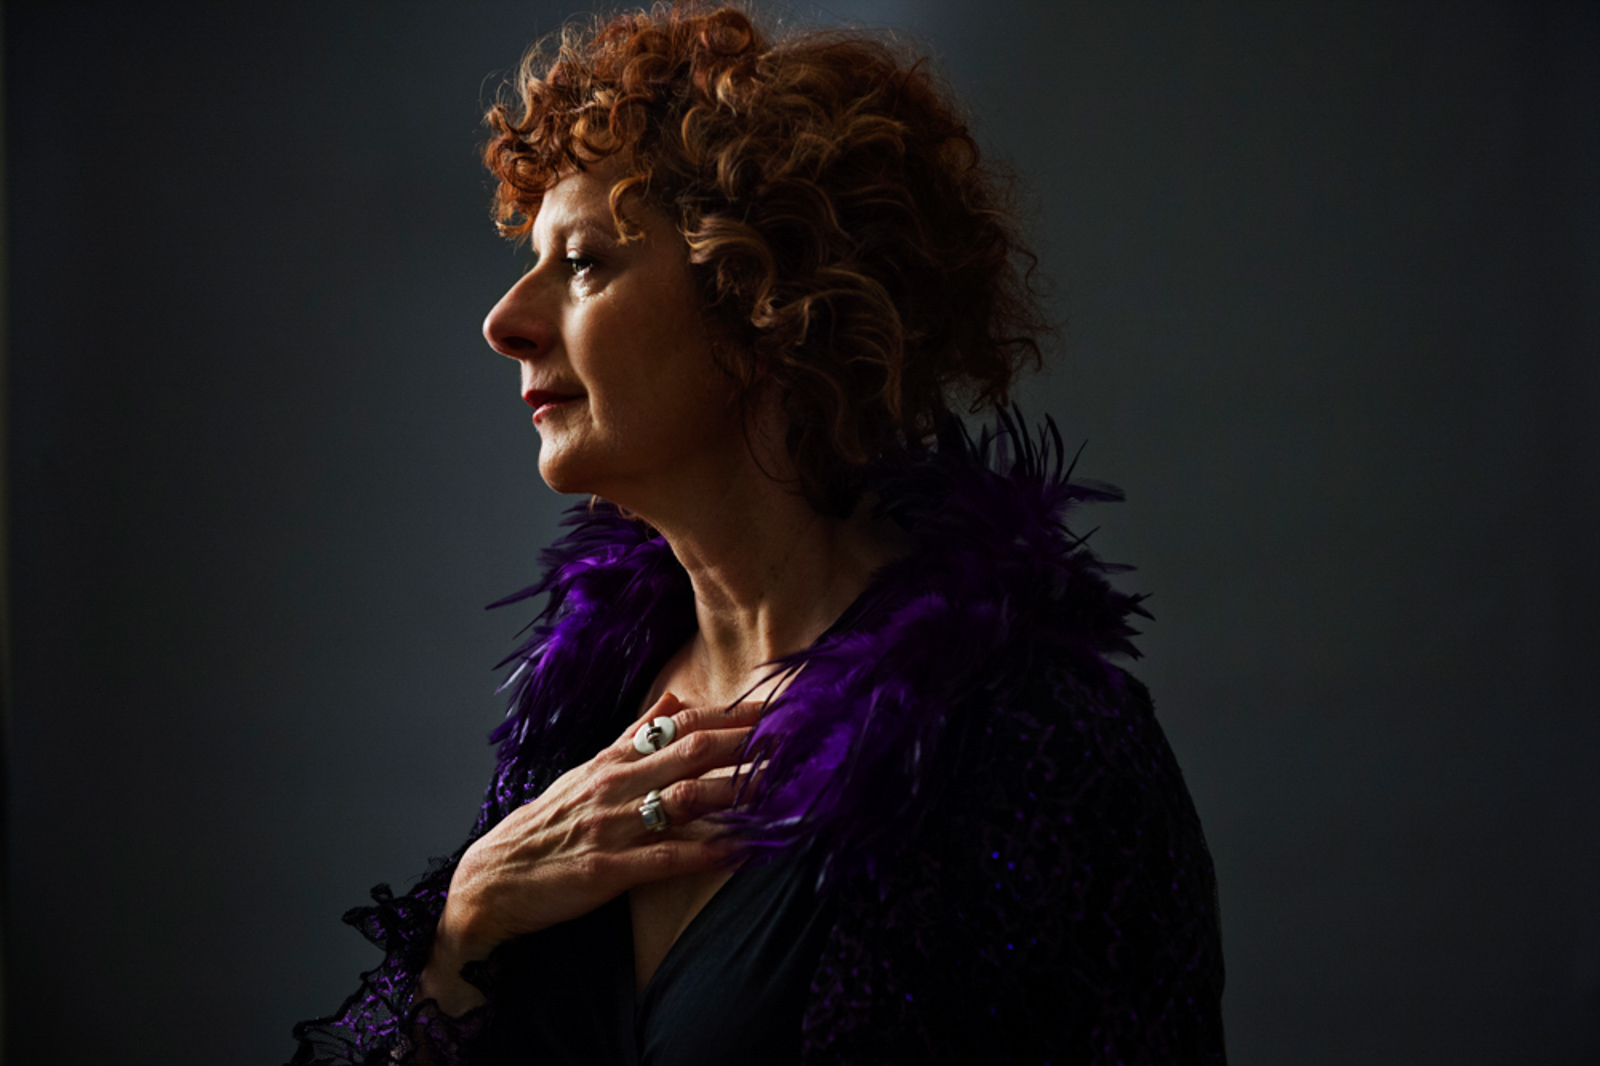 Portrait of woman with red hair and purple coat, looking pensive